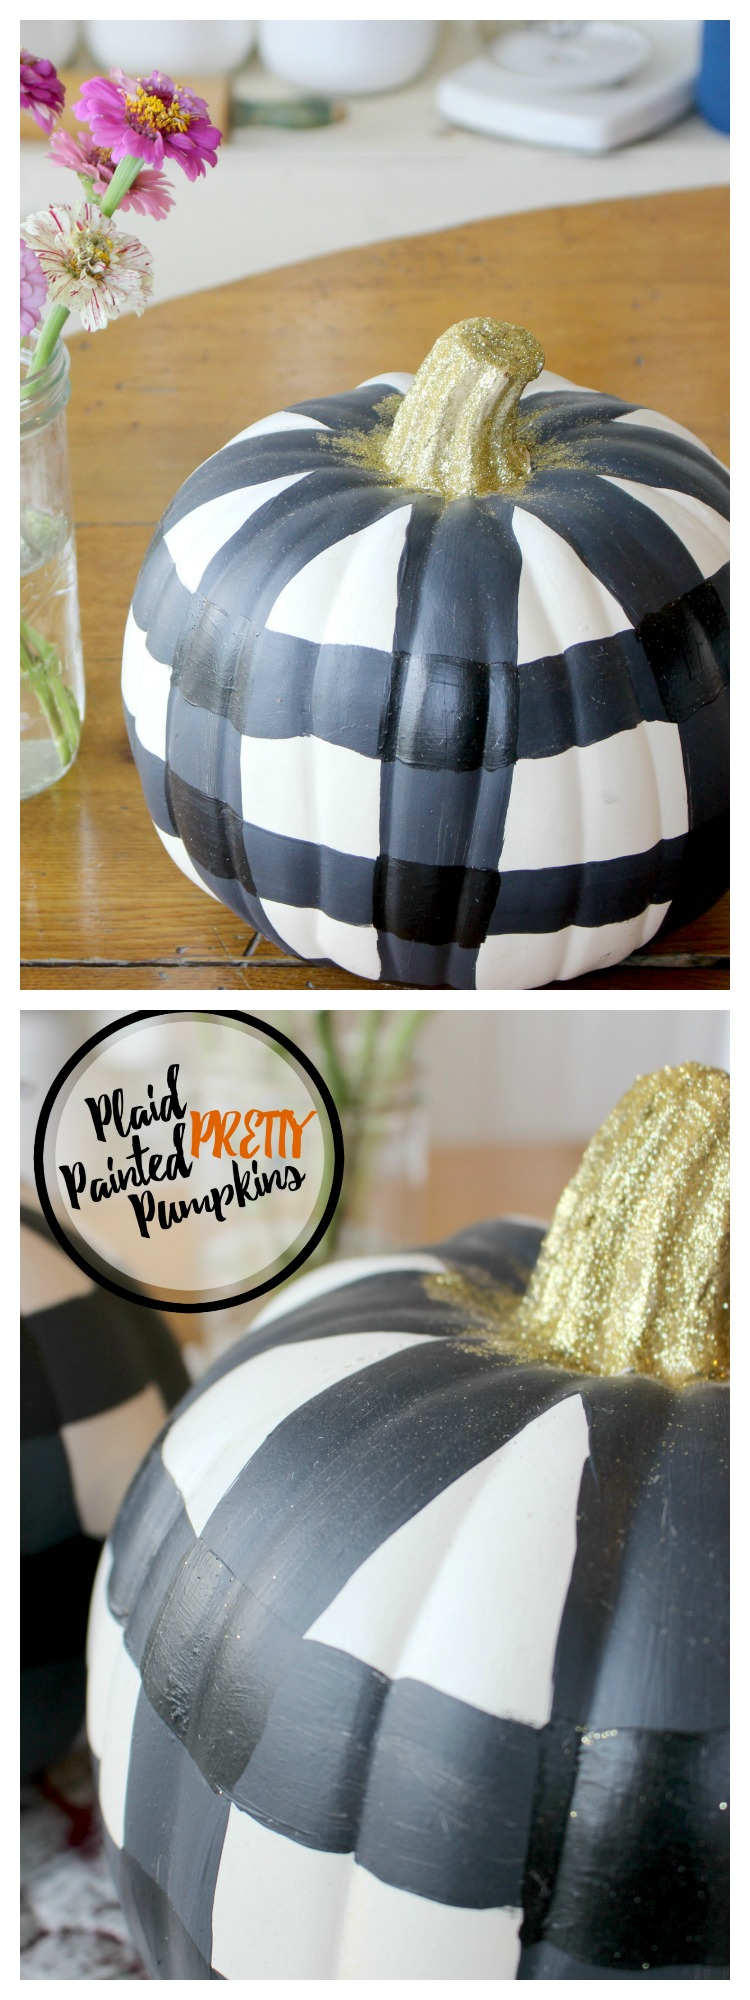 DIY Plaid Painted Pumpkins for your fall decor! Lover of Gingham or Buffalo Plaid? This fall craft is for you!